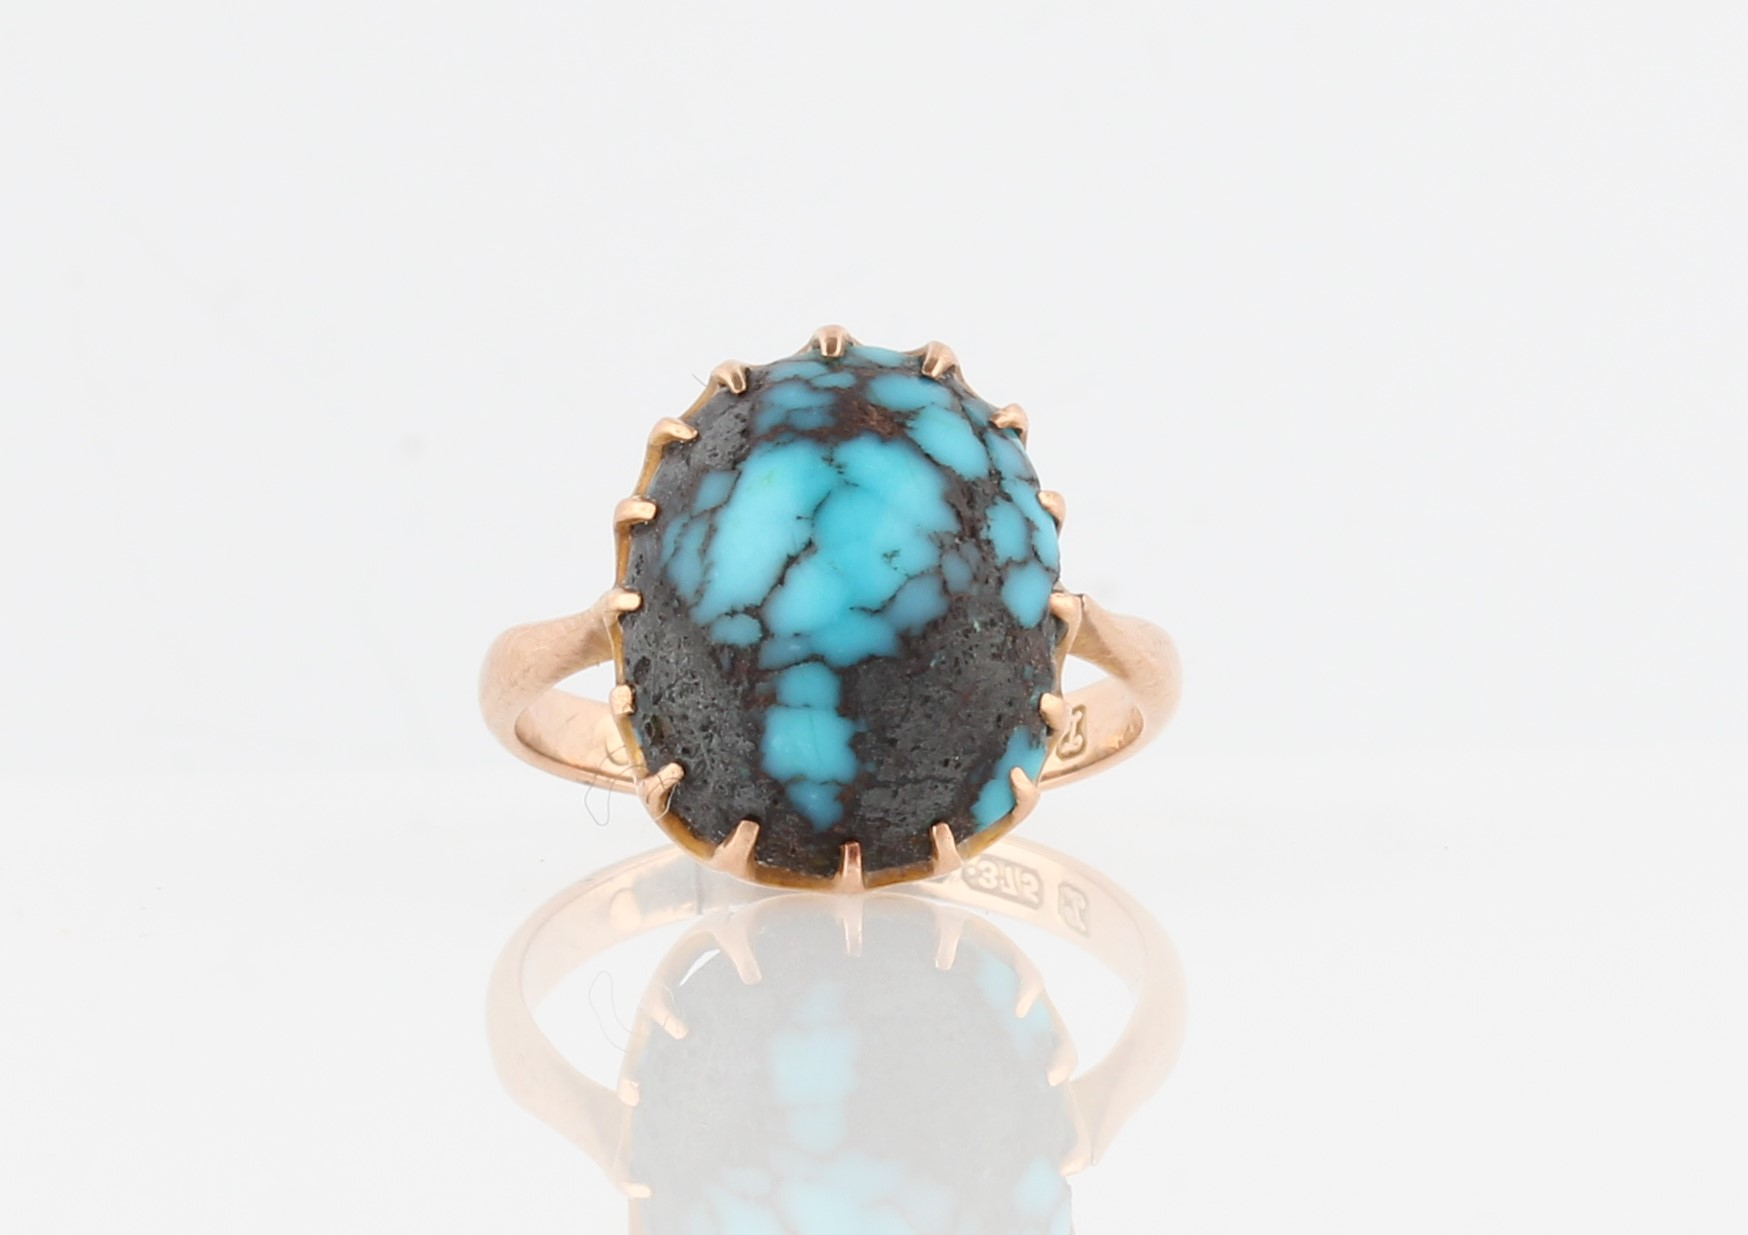 Lot 38 - A 9ct yellow gold turquoise ring, set with an oval turquoise cabochon, hallmarked Chester 1925, ring